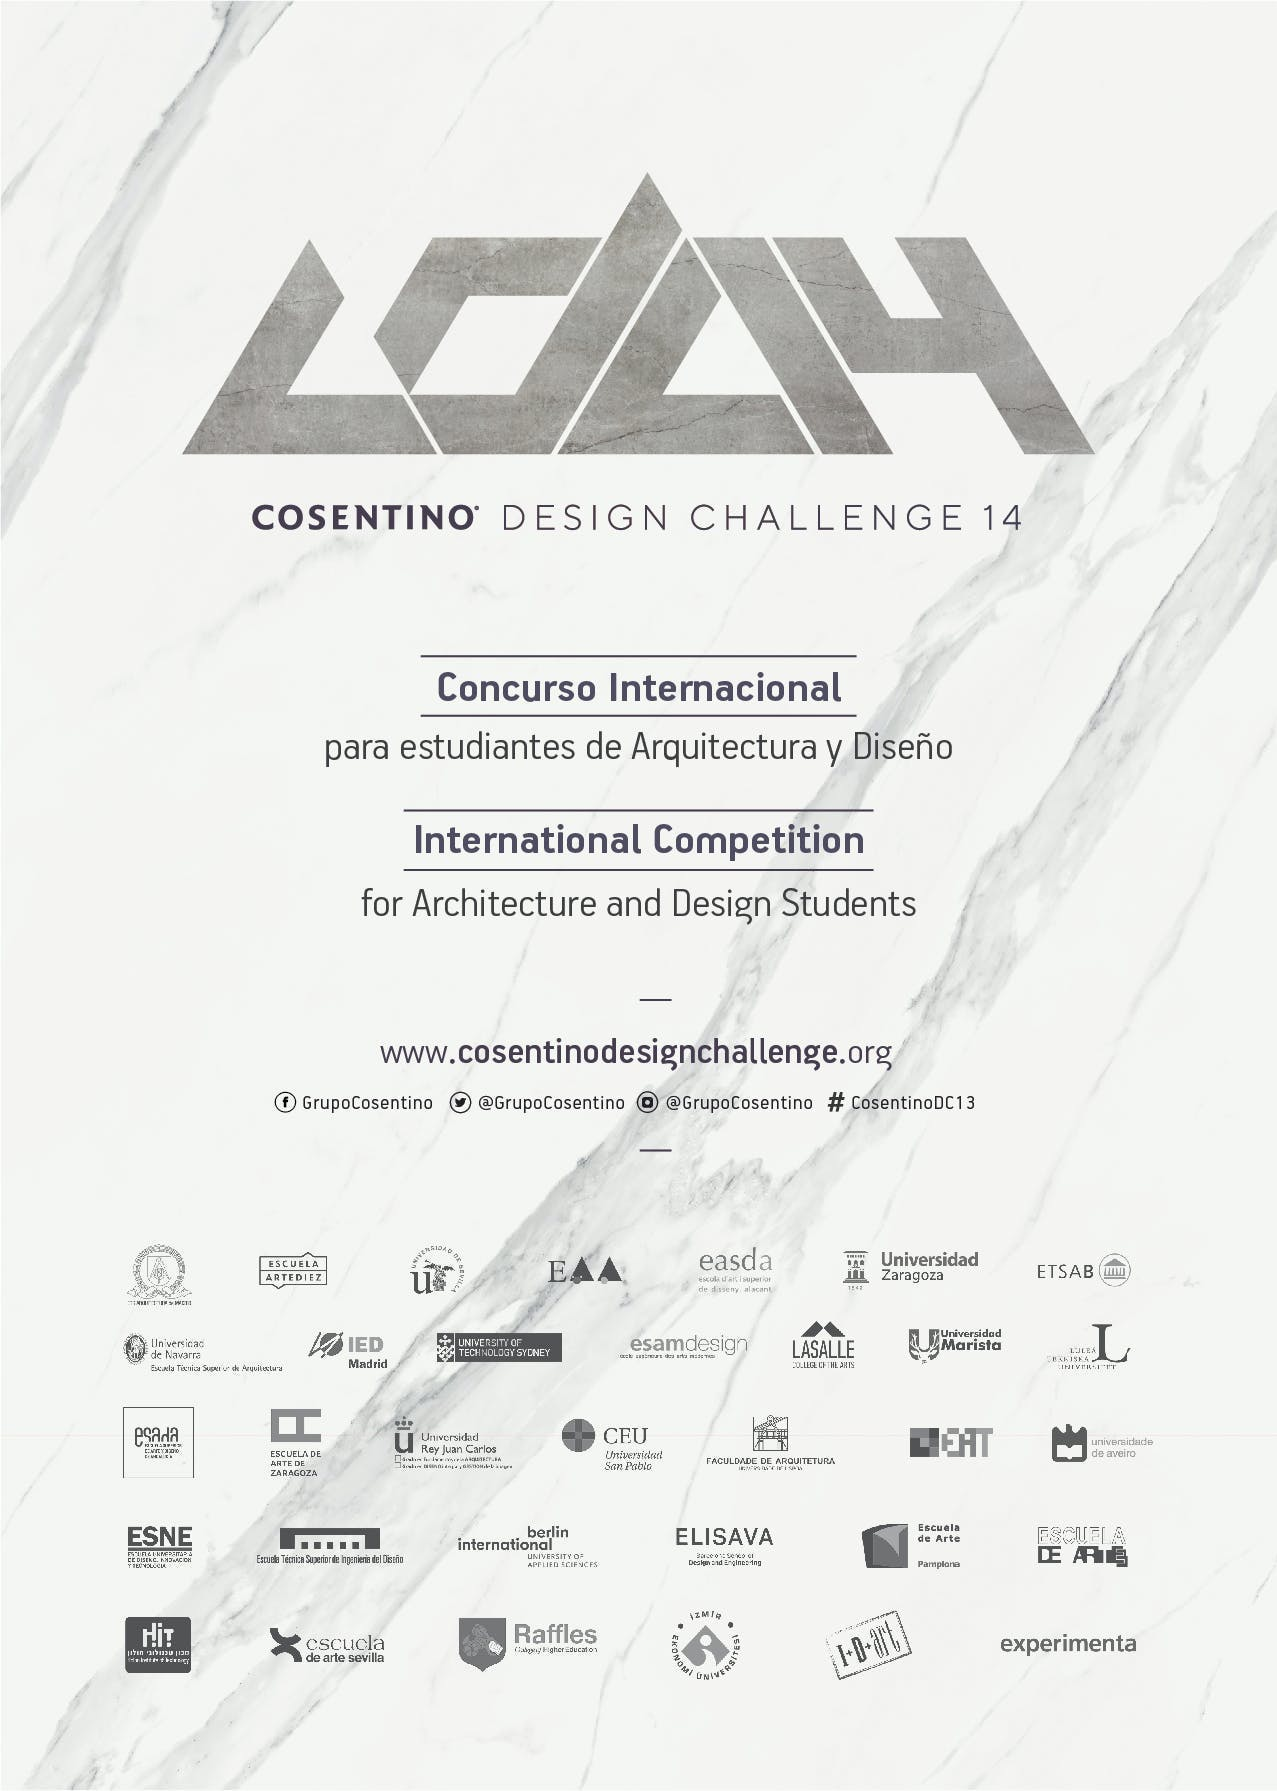 Image of Anuncio CDC 14 Digital 1 in Cosentino presents the 14th edition of the Cosentino Design Challenge - Cosentino